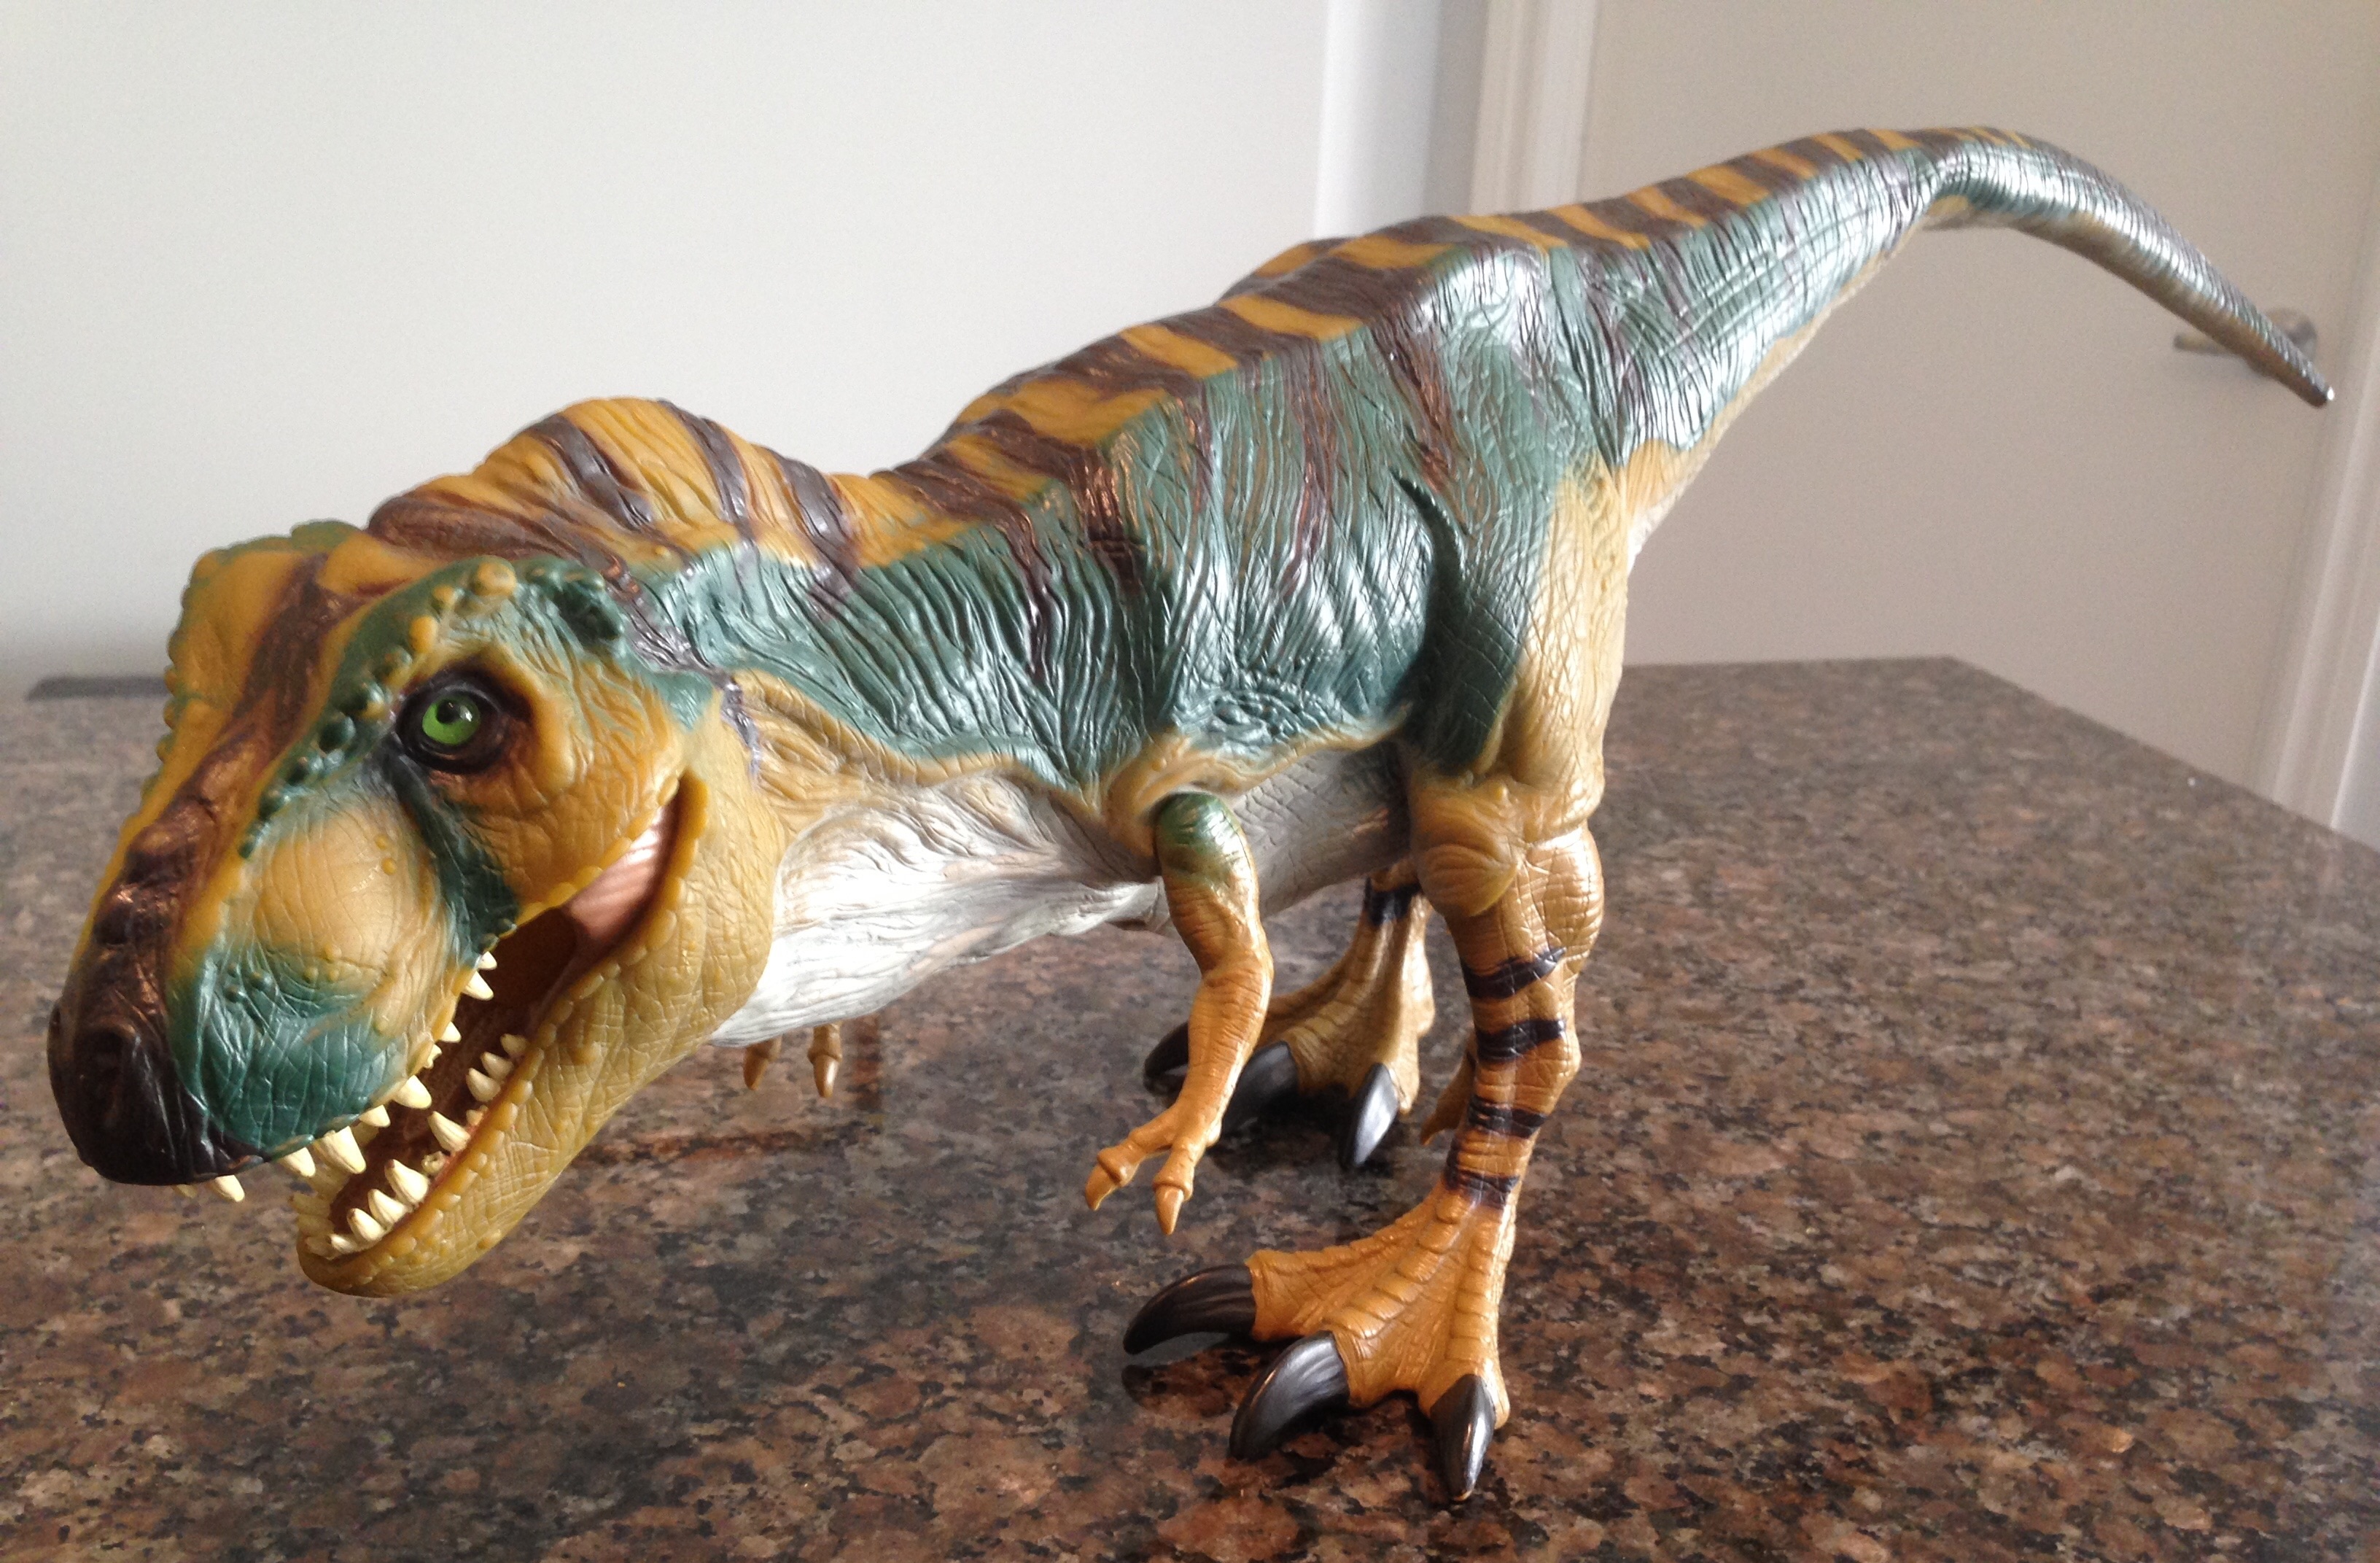 T Rex Toy : Tyrannosaurus rex bull from the lost world jurassic park